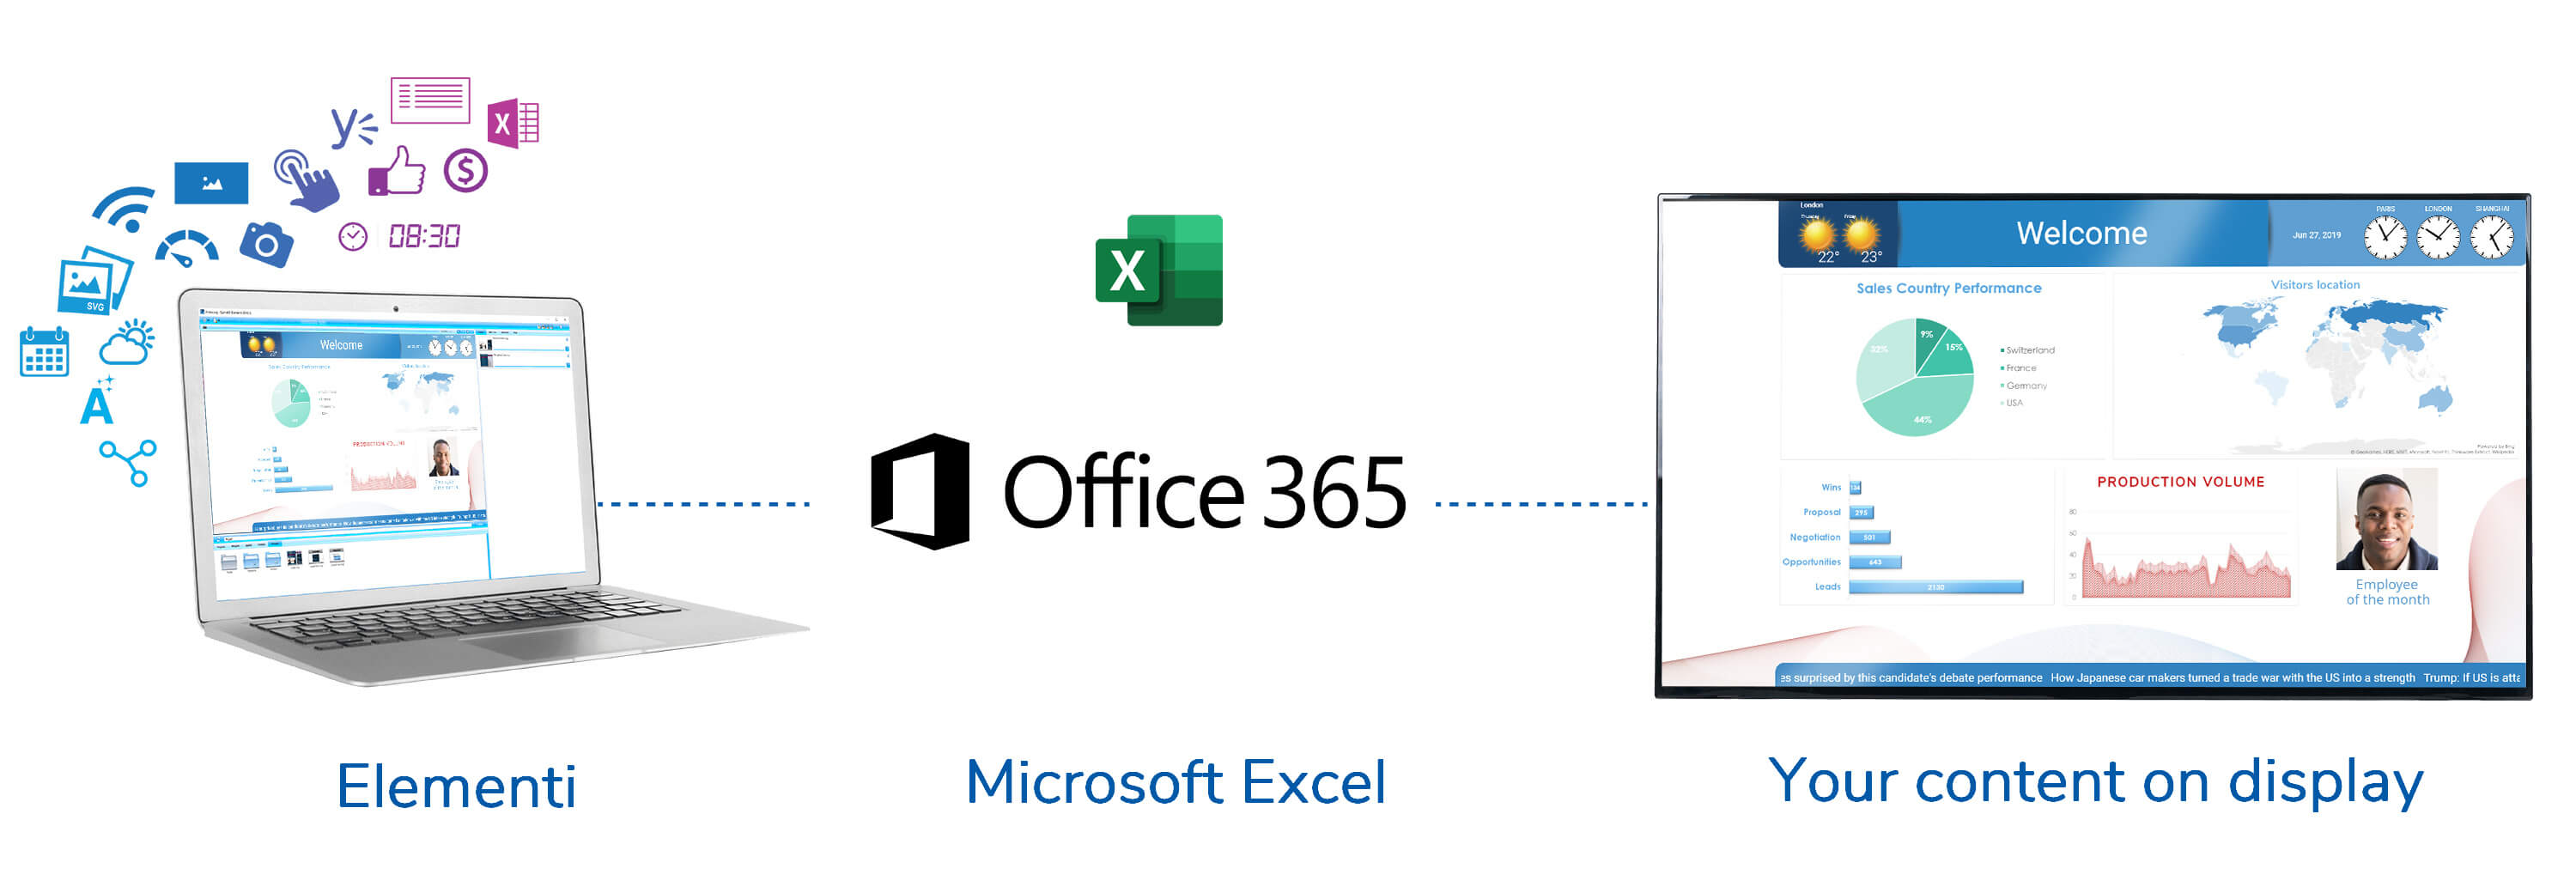 elementi digital signage software integration with microsoft office excel online